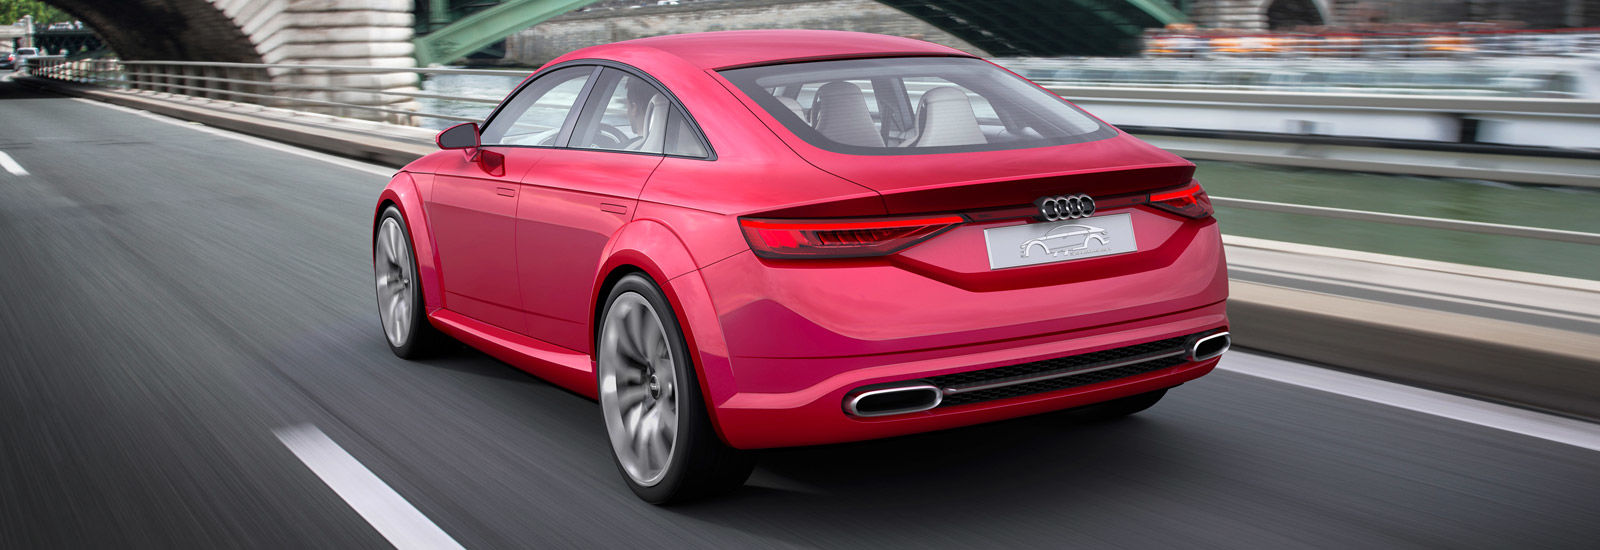 2019 Audi A3 Coupe price, specs and release date | carwow